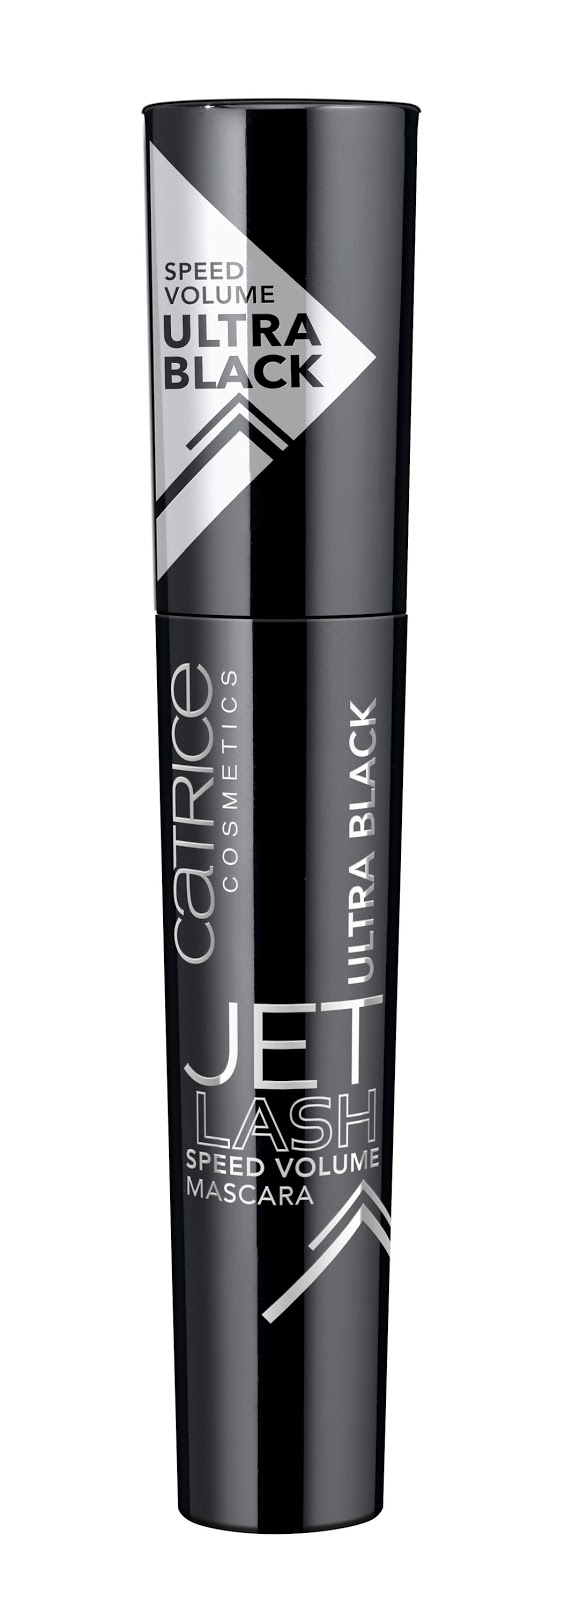 Catrice - Jet Lash – Speed Volume Mascara Ultra Black and Waterproof